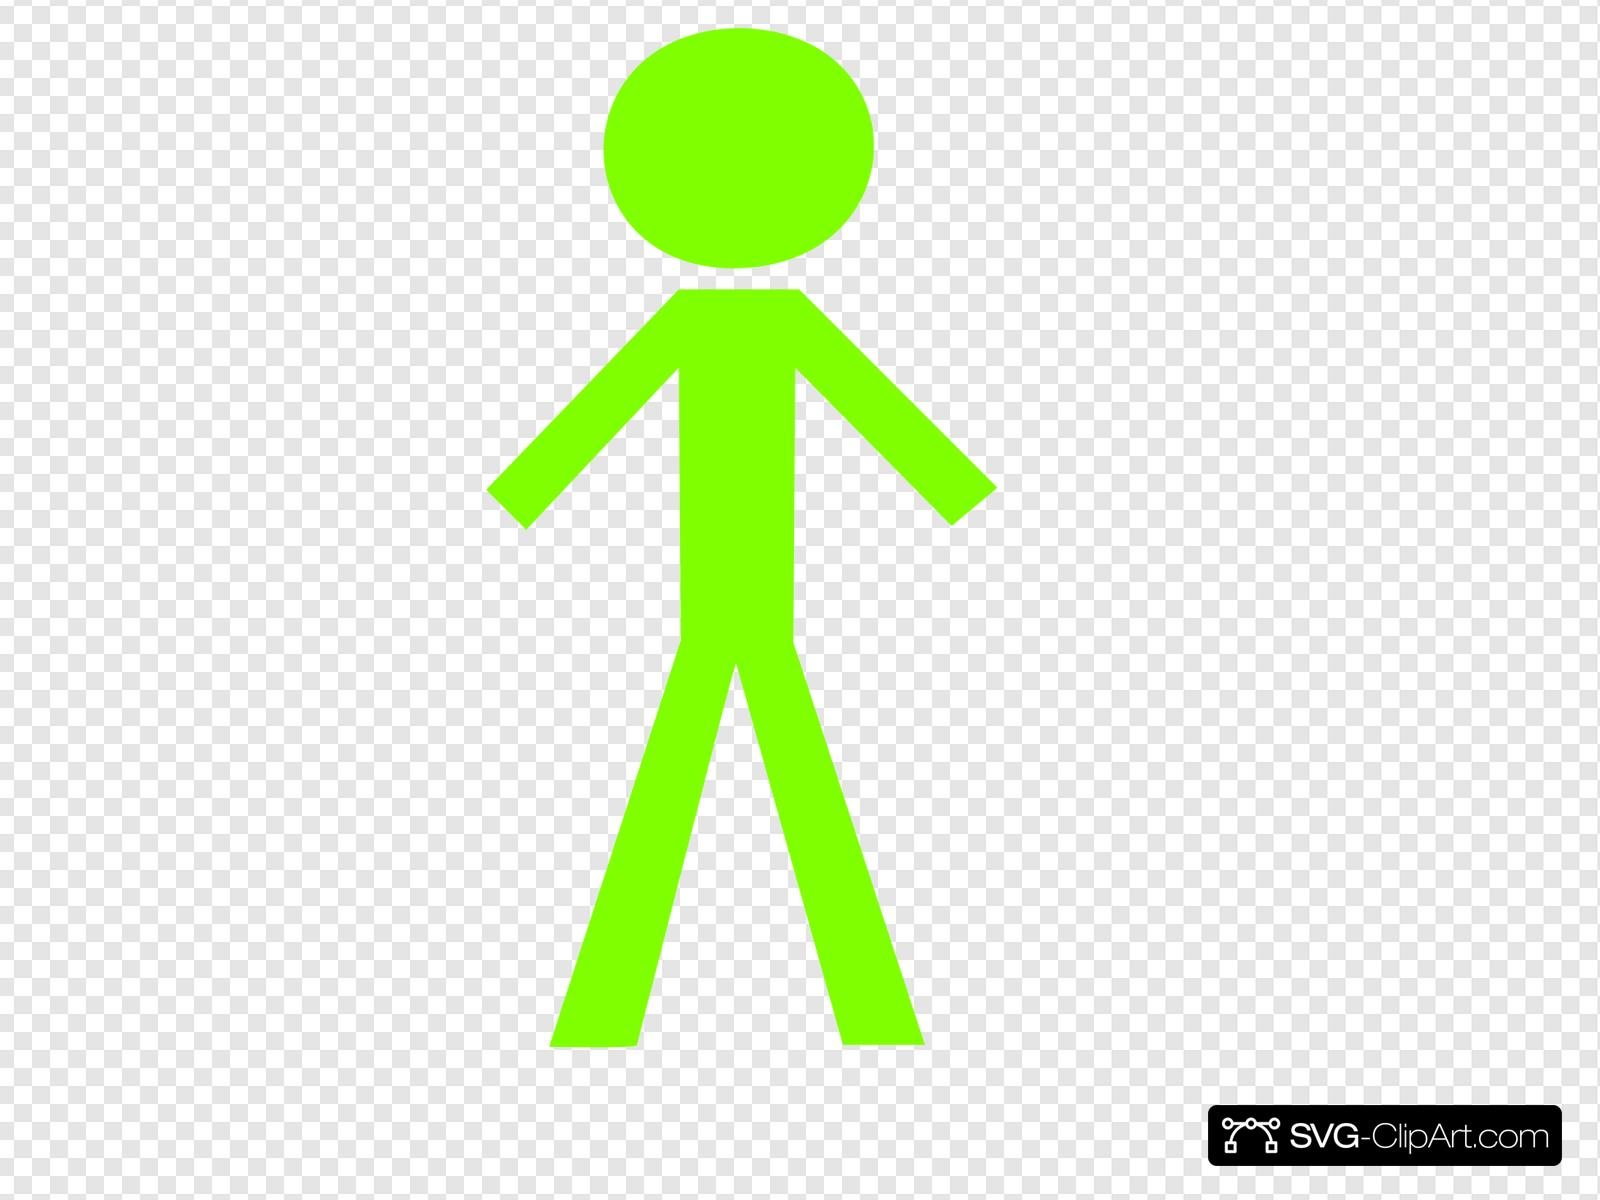 Human Clip art, Icon and SVG.